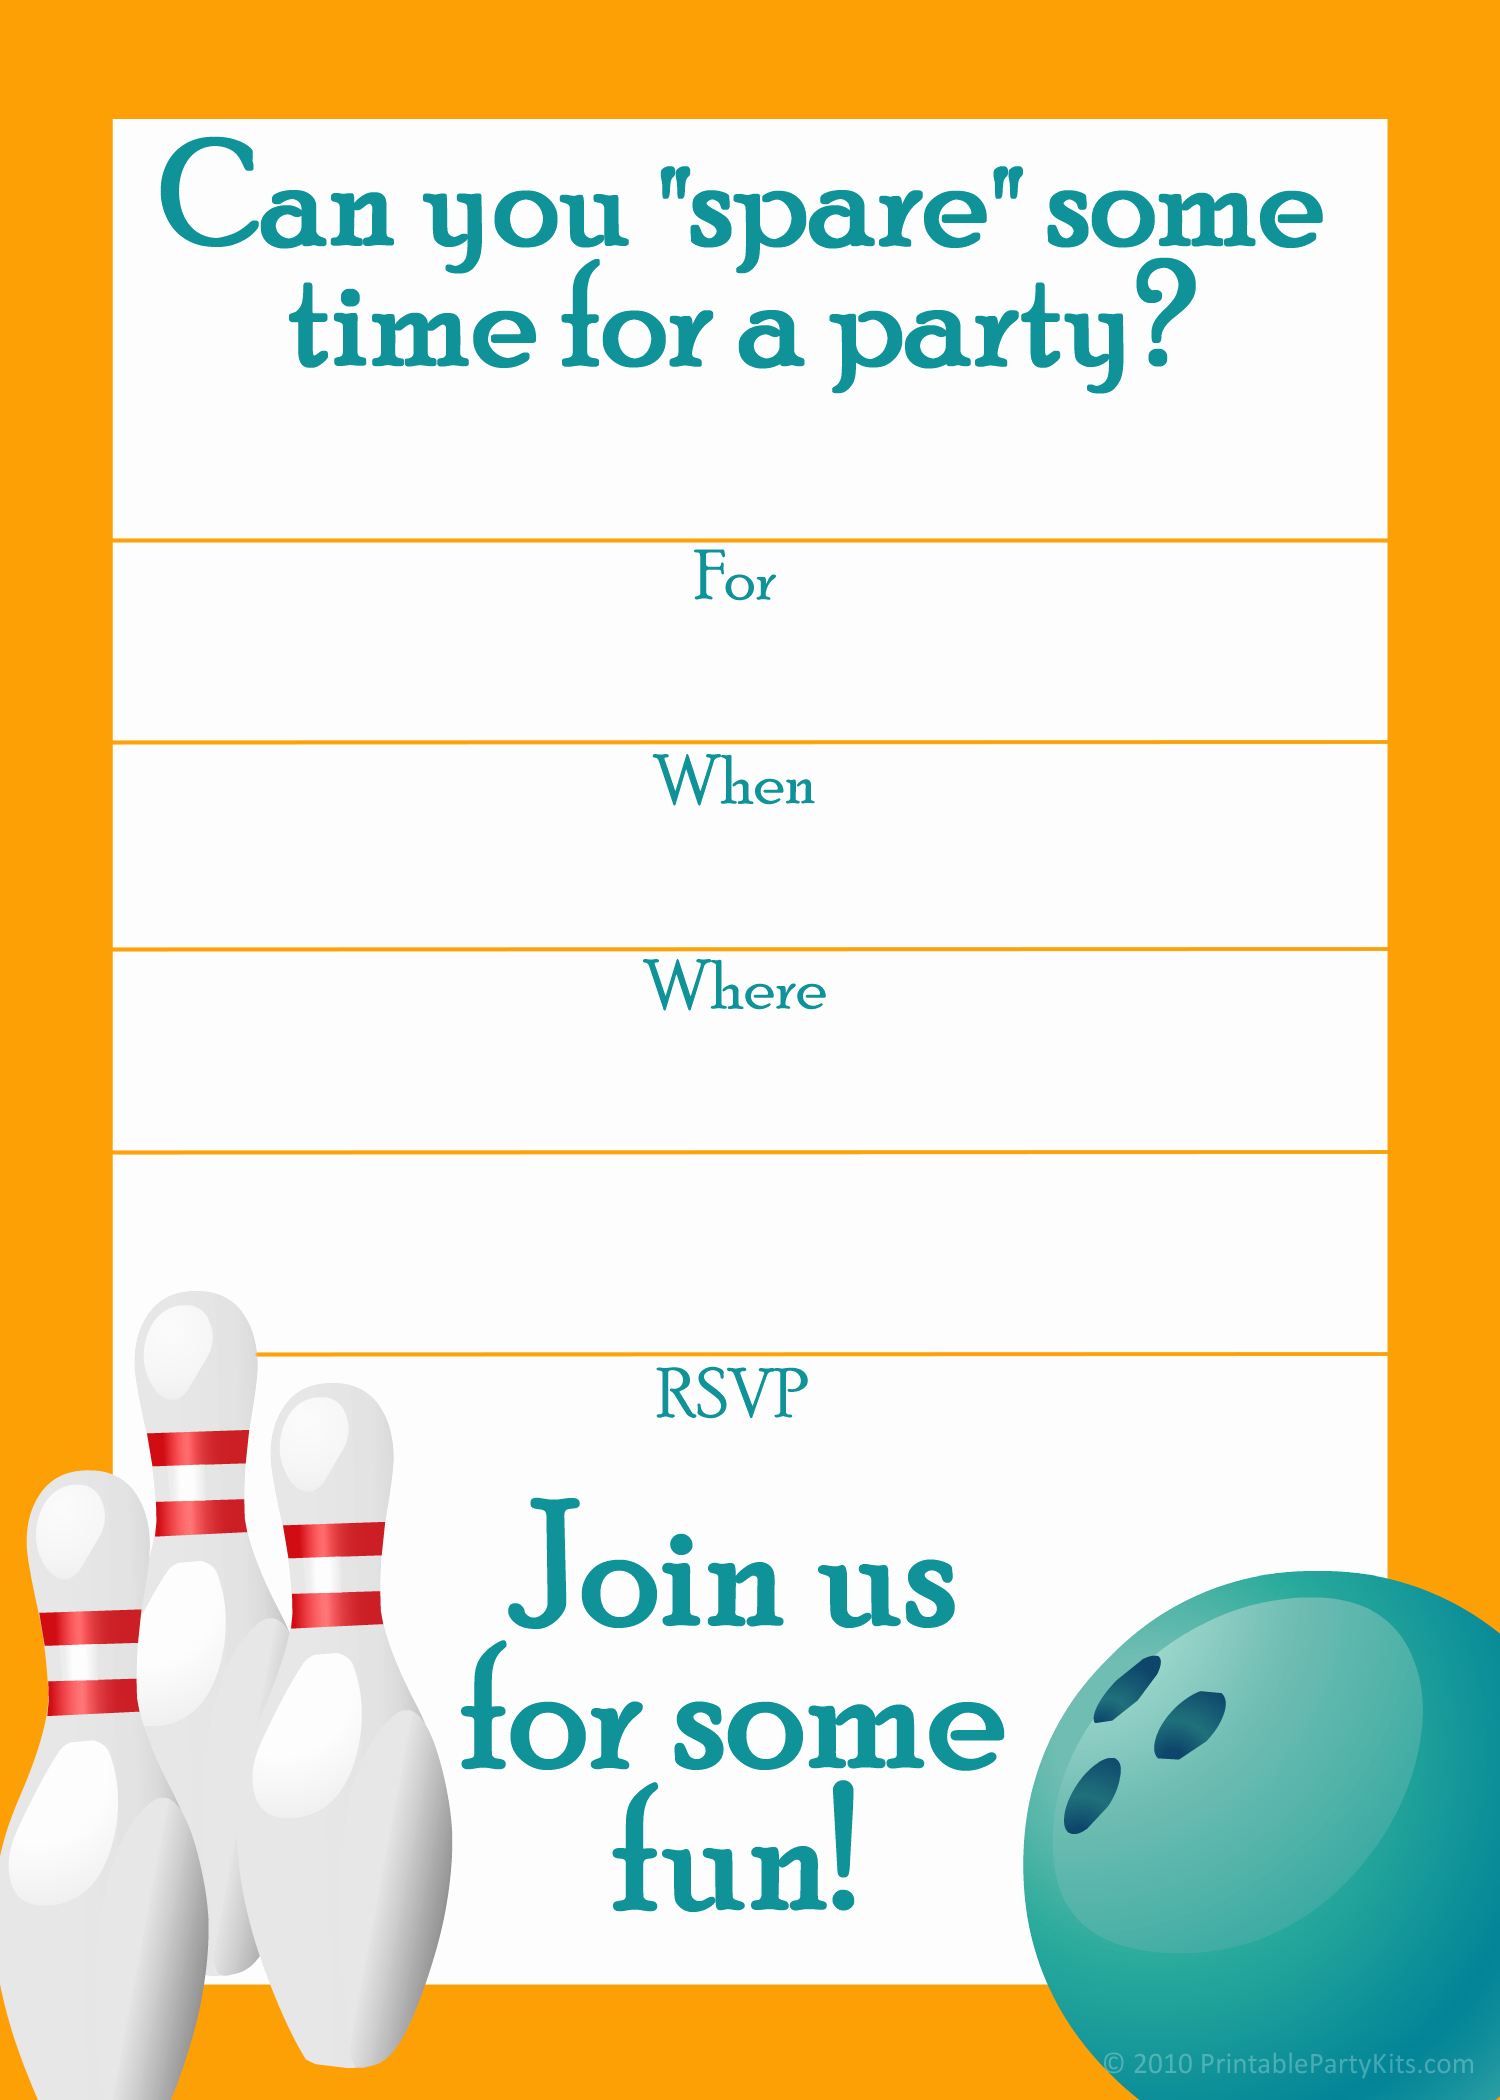 Bowling Party Invitation Template Free Lovely Free Printable Sports Birthday Party Invitations Templates Party T Ideas